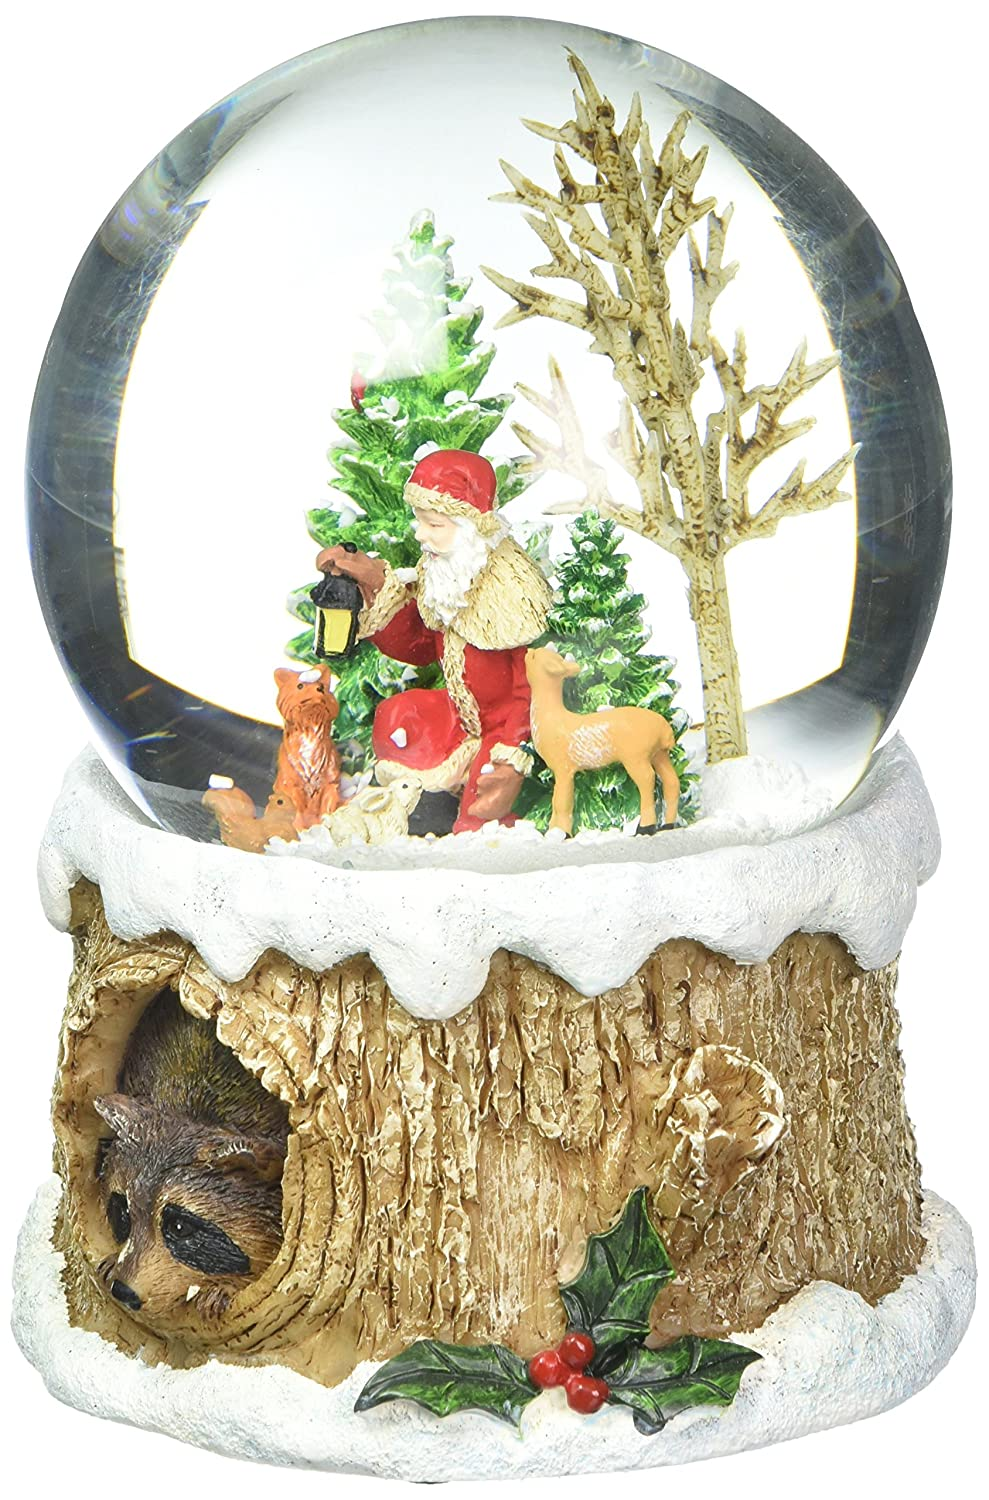 Glitterdomes 100mm Musical Glitter Dome, Features Santa with Woodland Animals on a Tree Like Base with a Racoon Peeking Out, 5.75-Inch Roman 32081